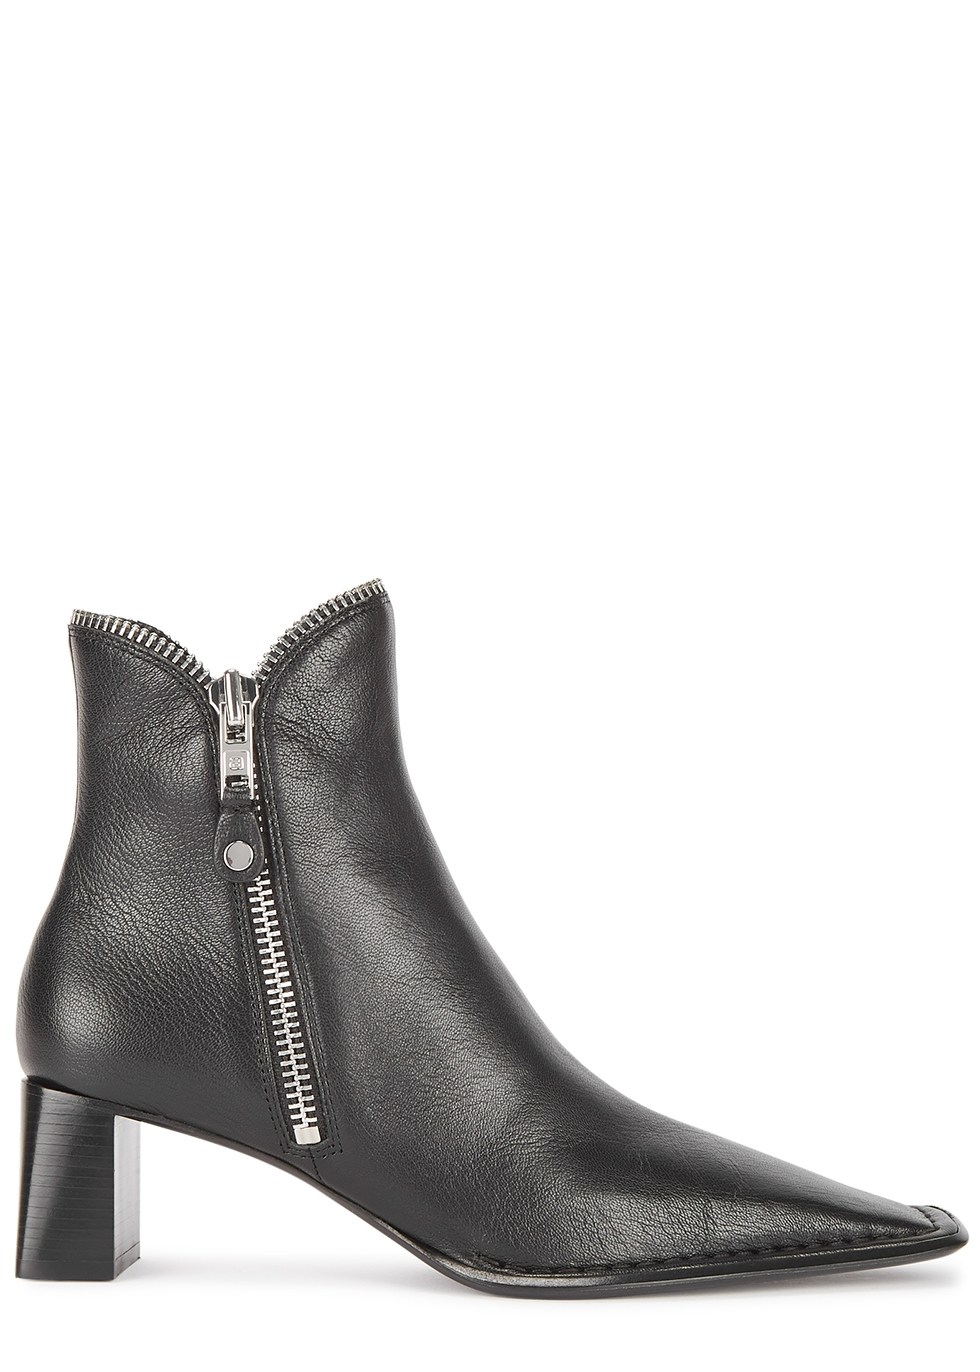 Lane 50 black leather ankle boots